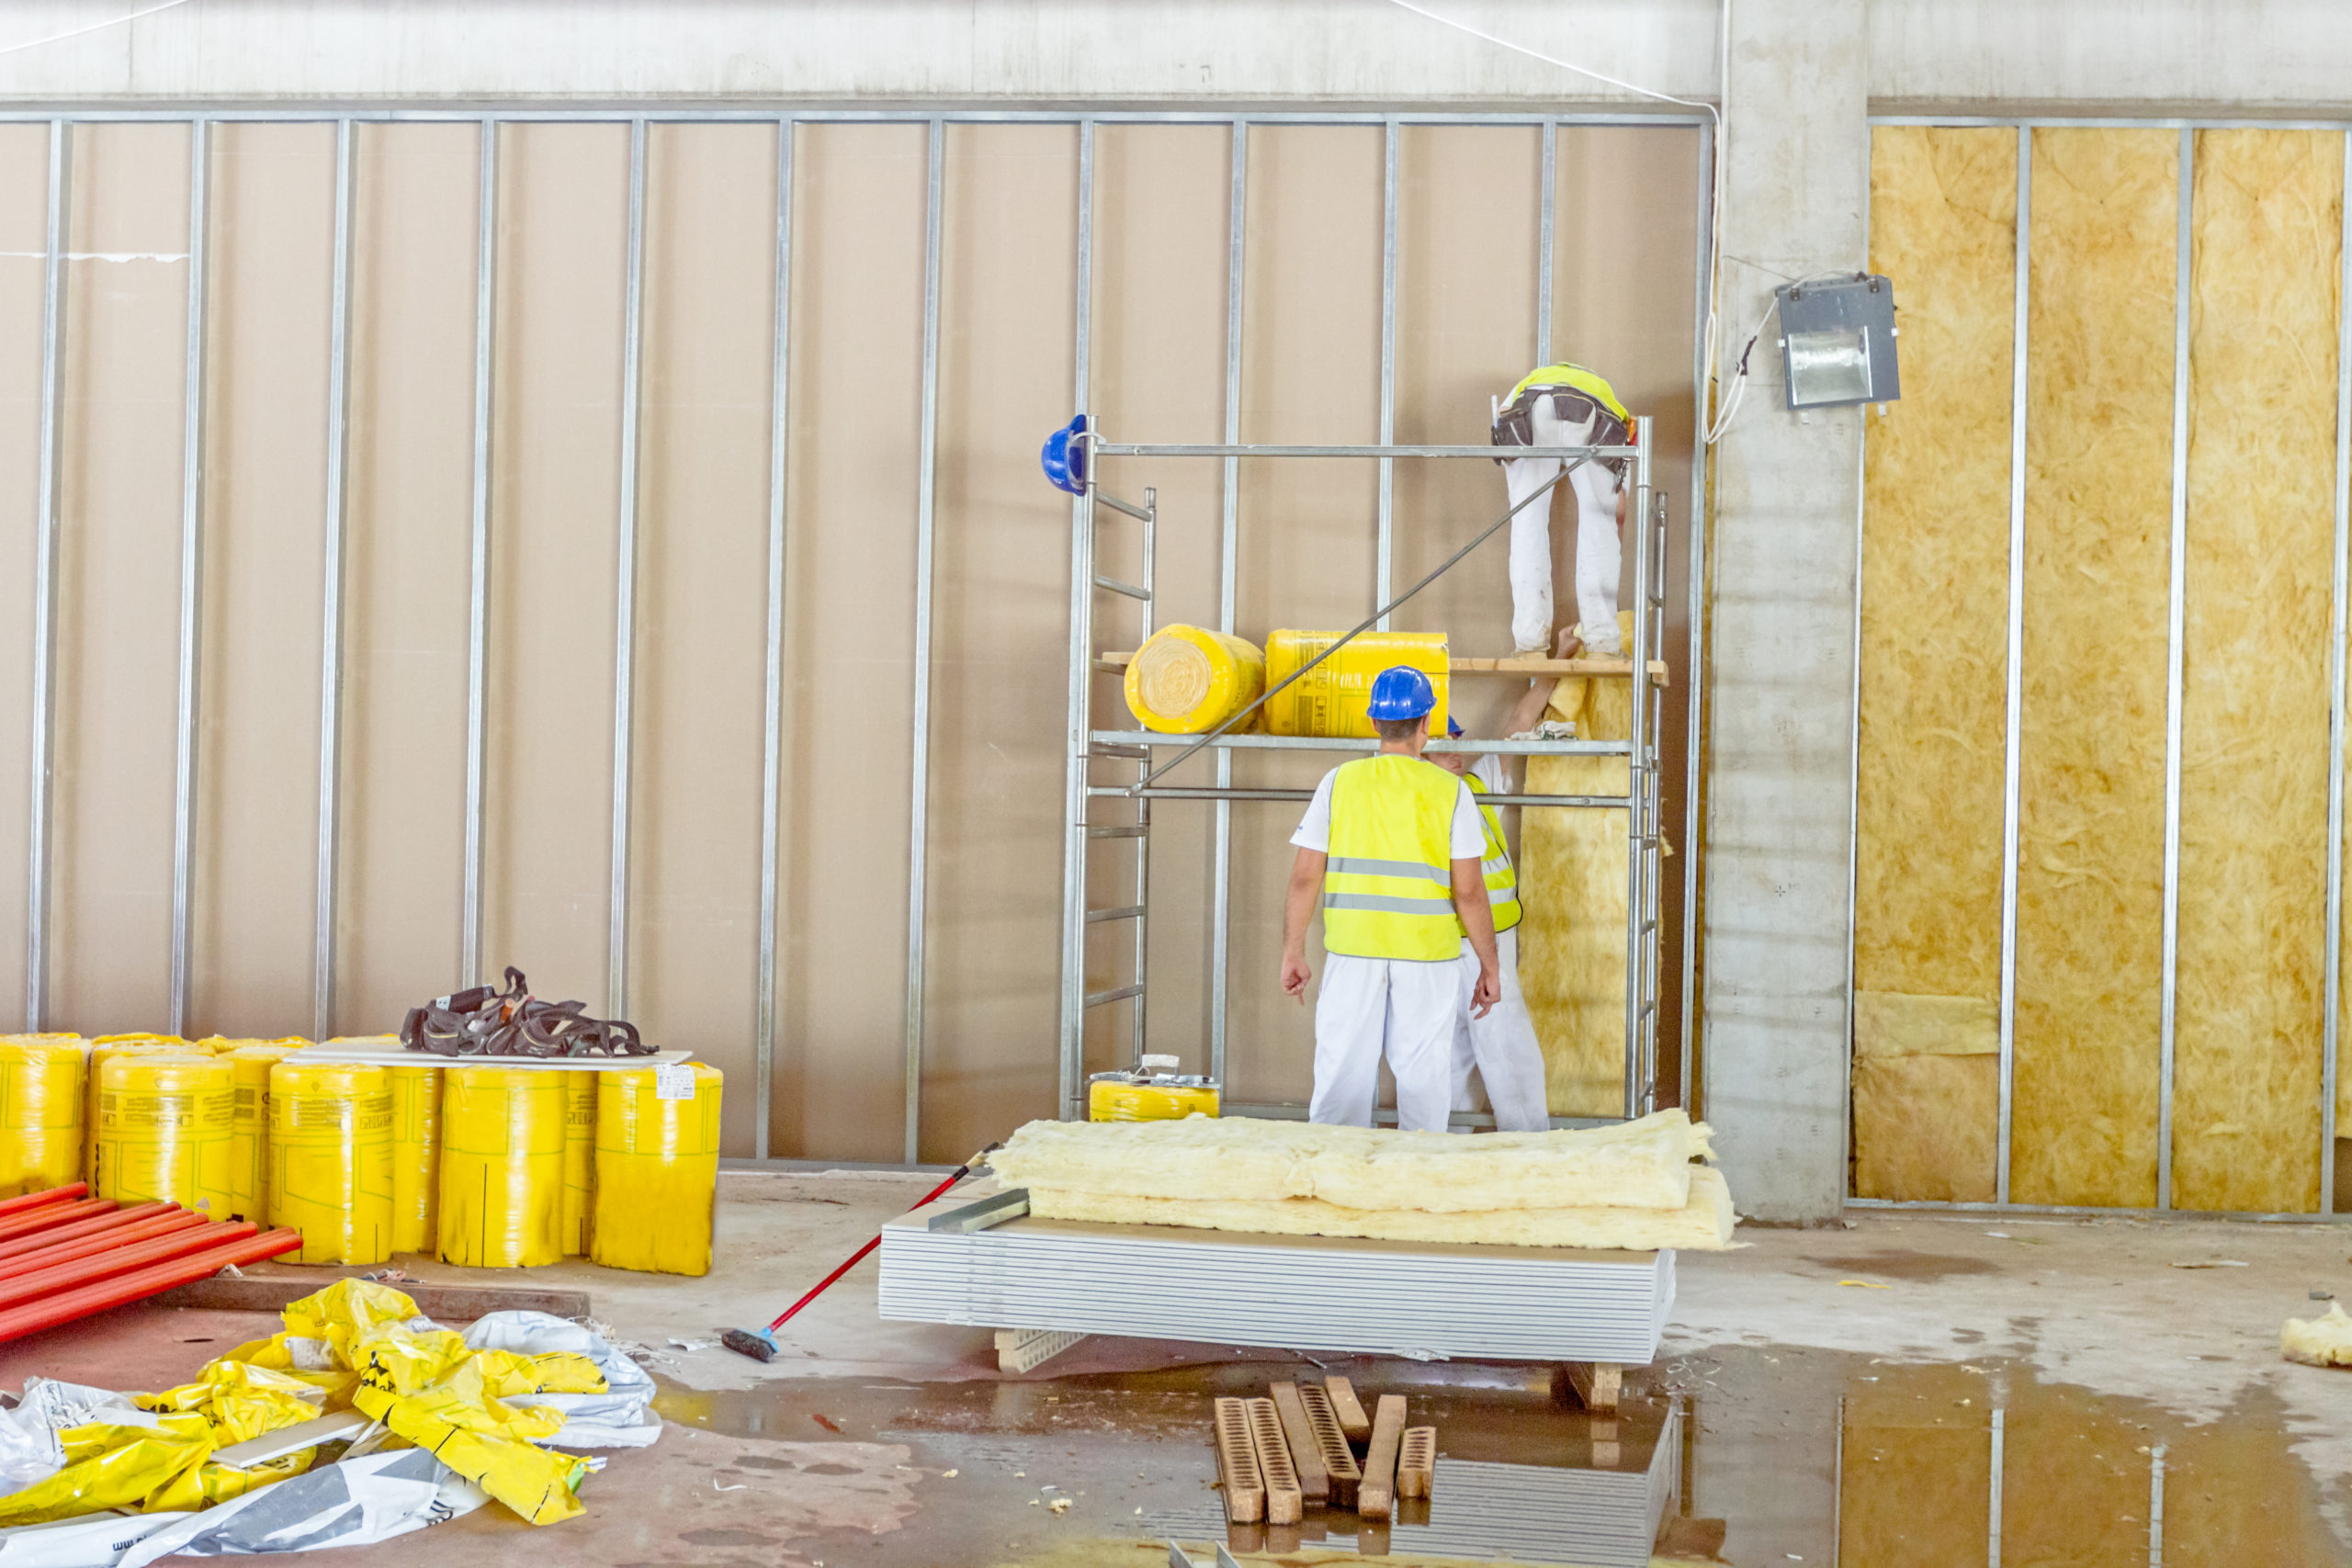 Zrenjanin, Vojvodina, Serbia – June 29, 2015: Building activities during construction of the large complex shopping mall